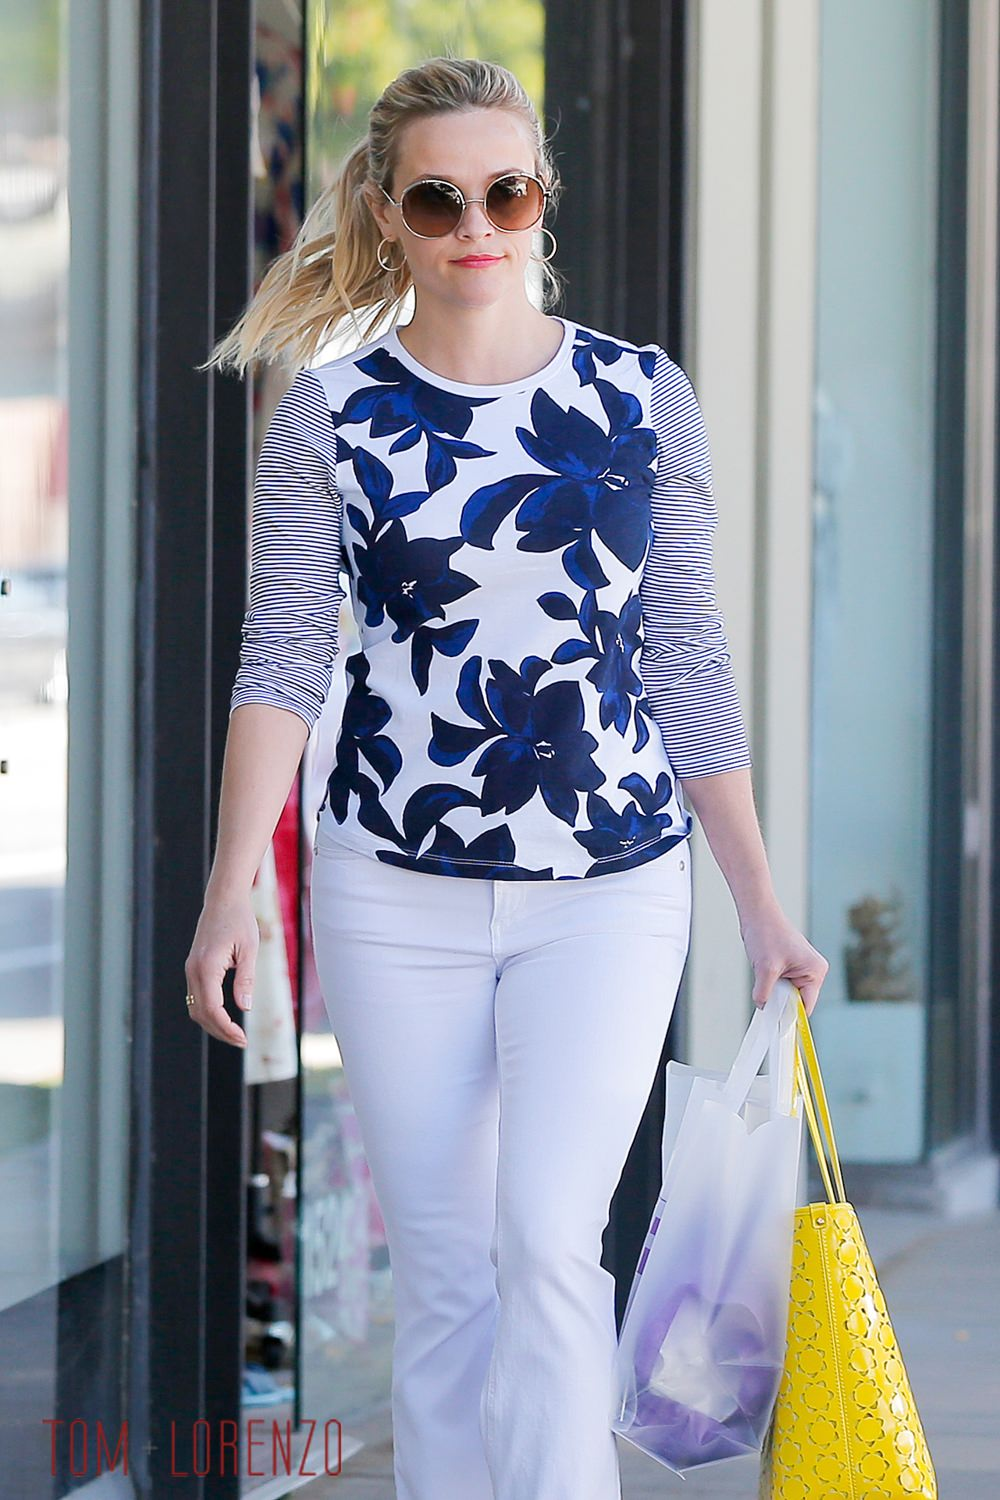 Reese Witherspoon Goes Shopping in Santa Monica in Draper